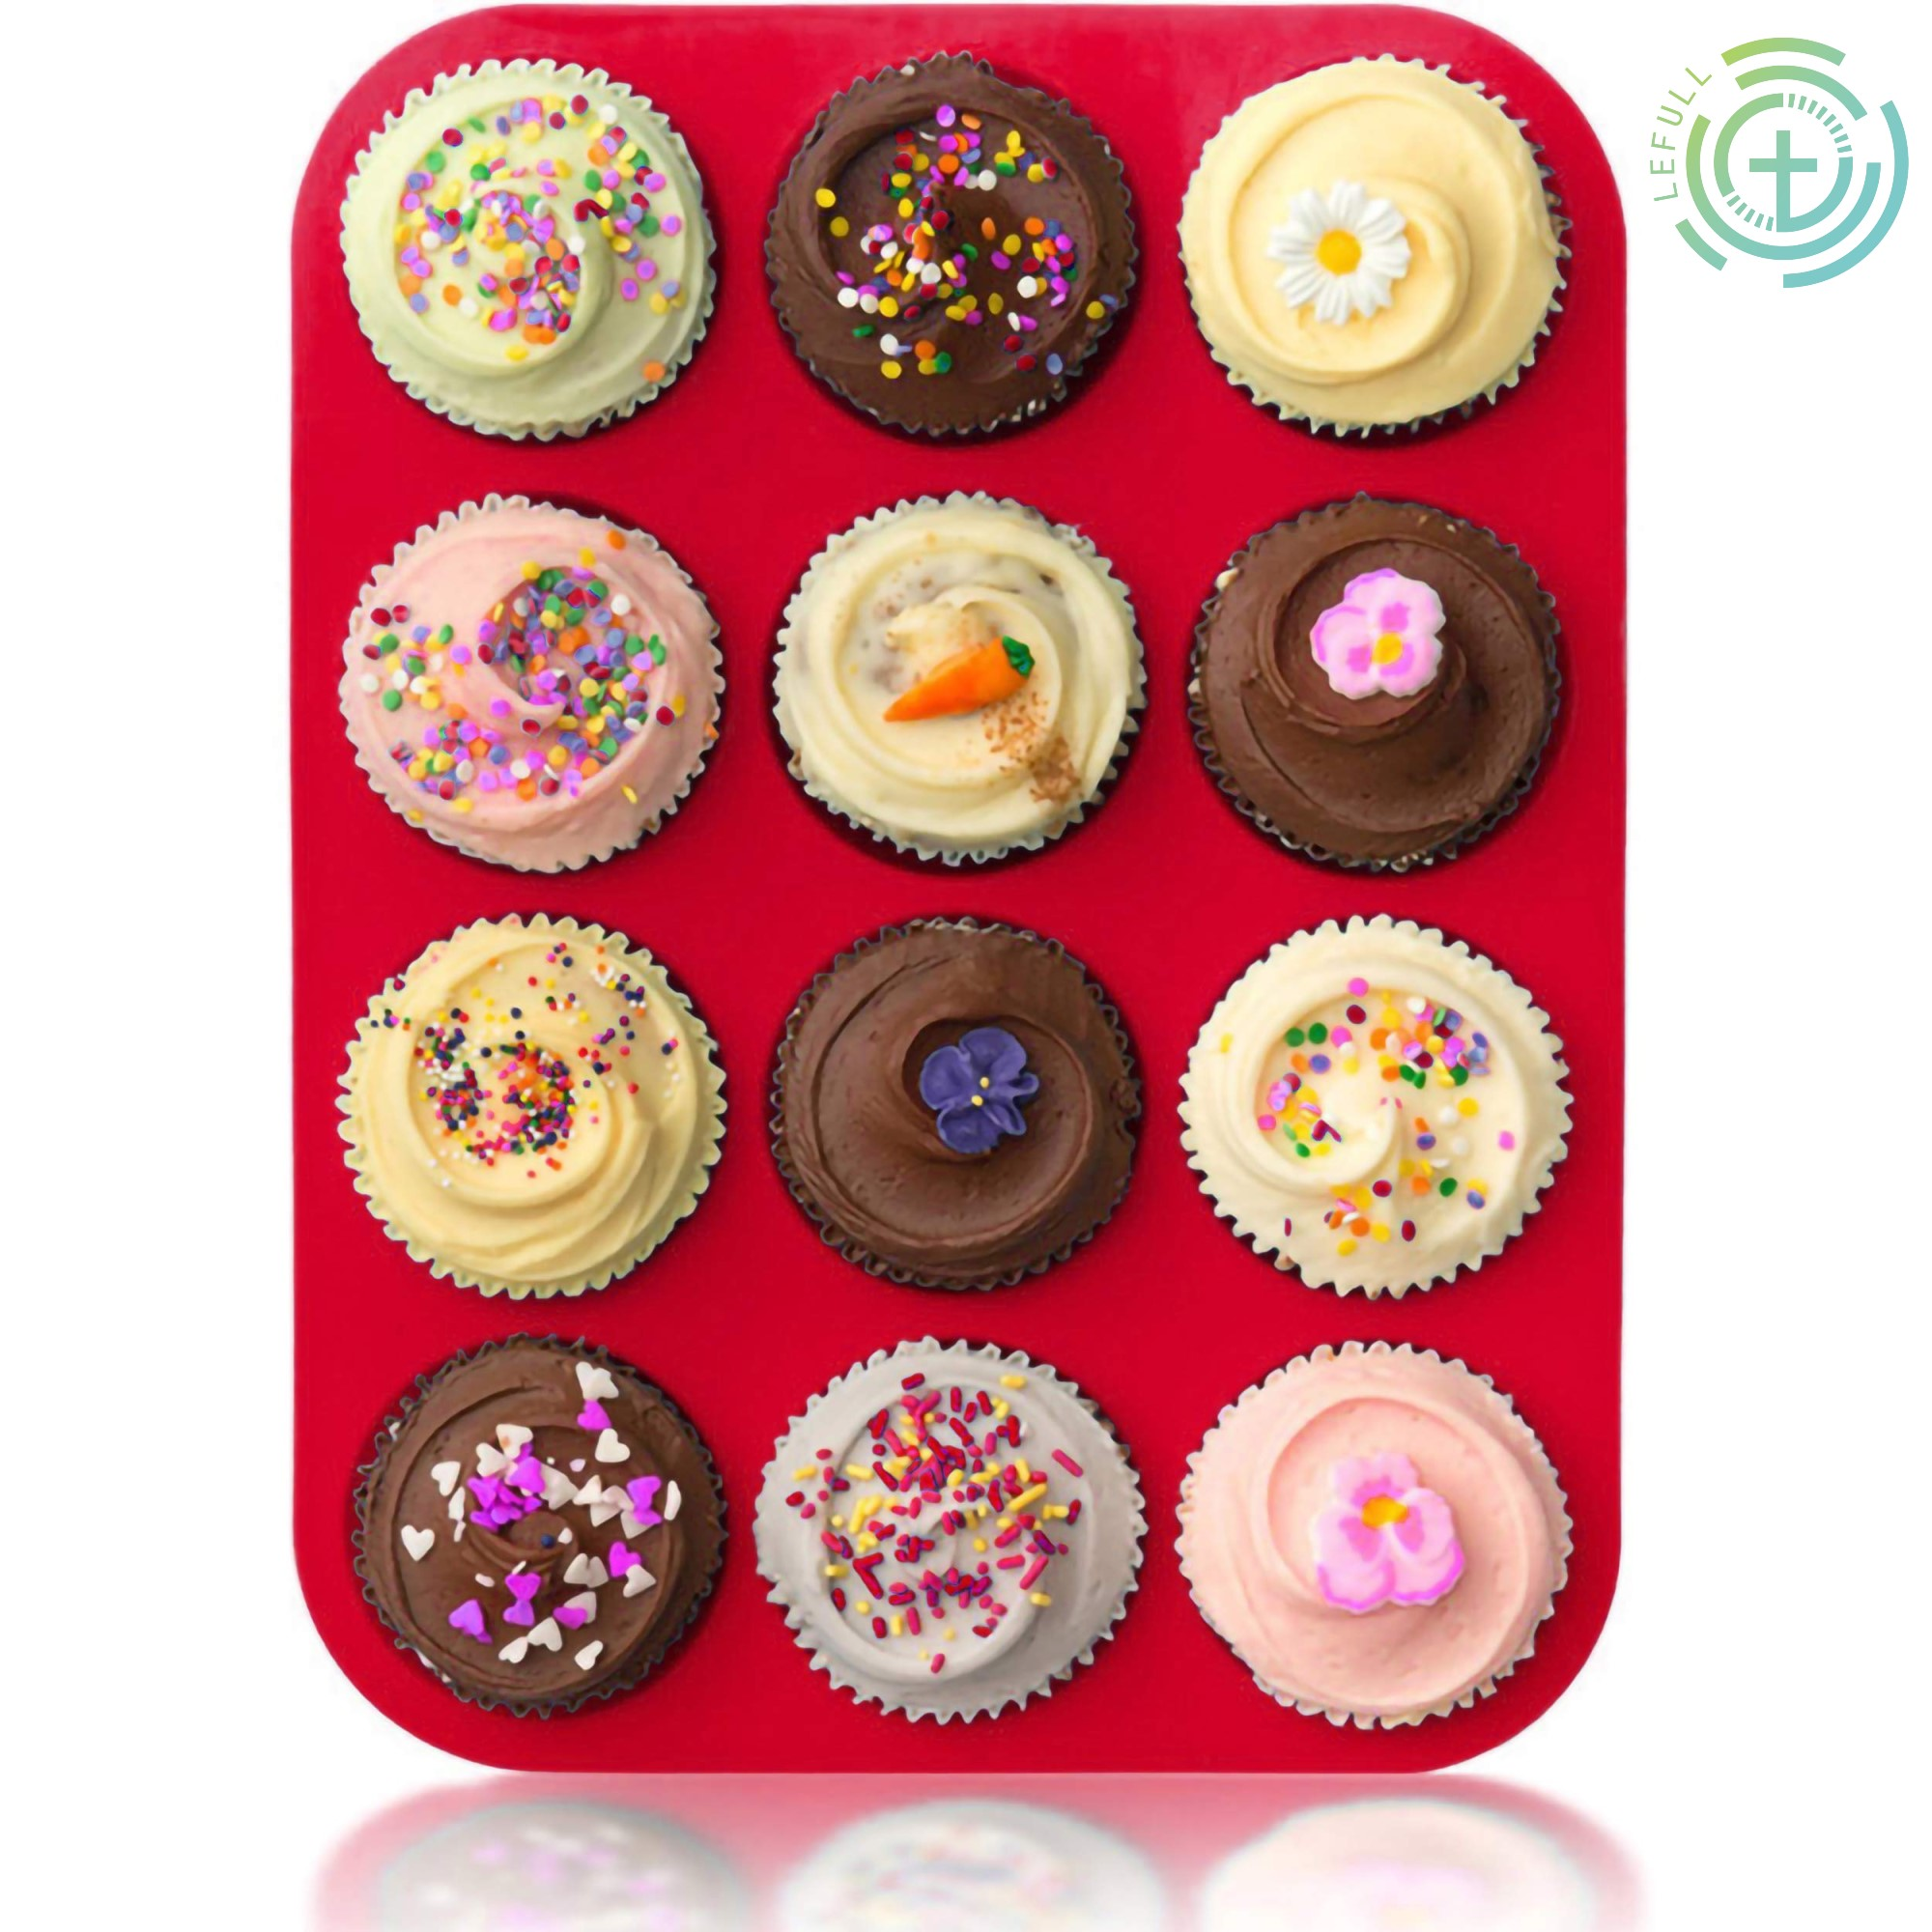 LeFull Thickened 12-Hole Cupcake Tray Round Silicone Cake Mold For Kitchen DIY Baking Tool Muffin Cup